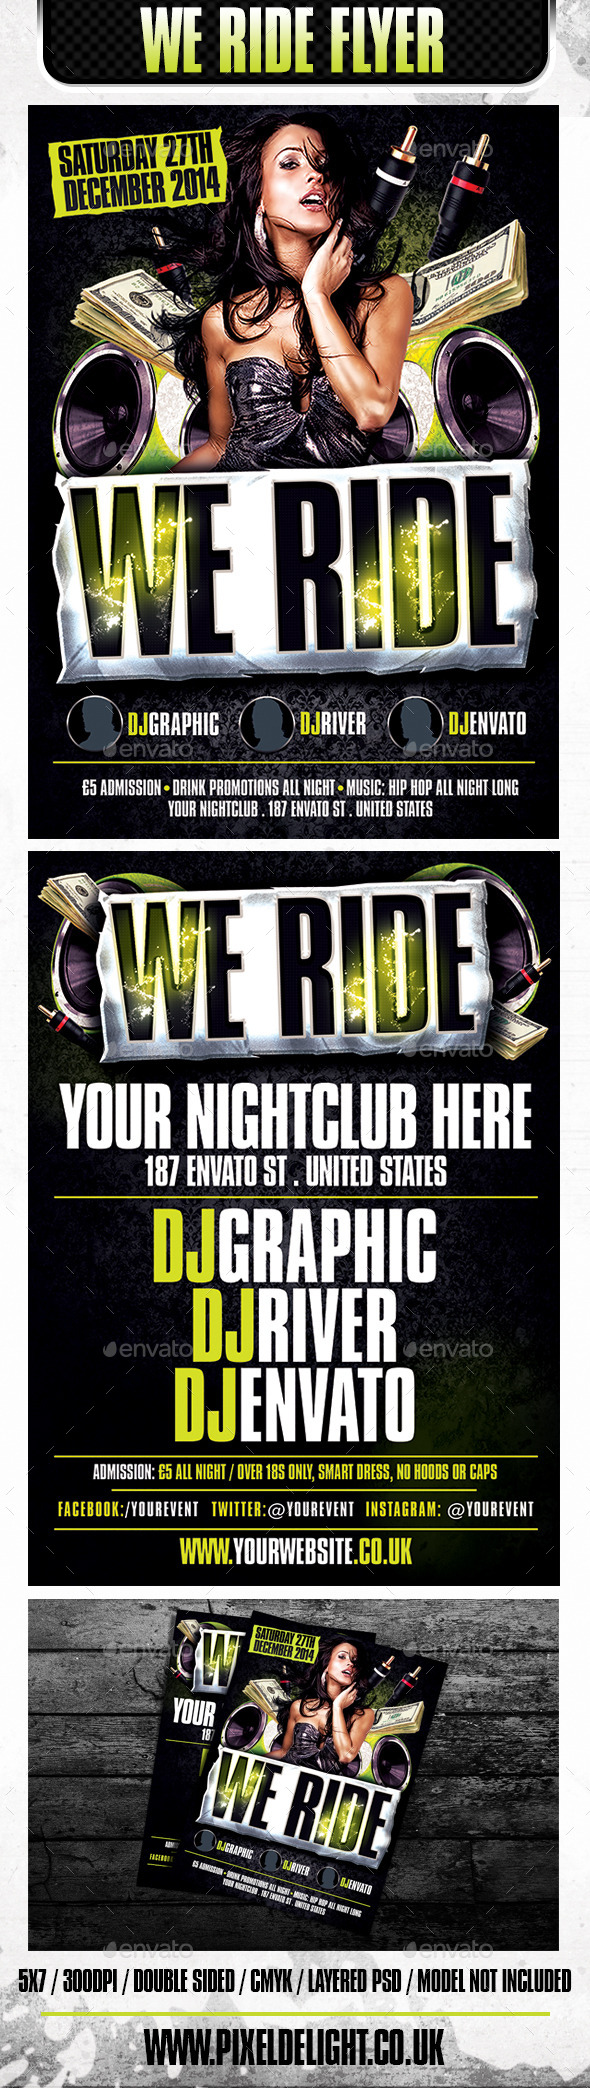 We Ride Club Flyer